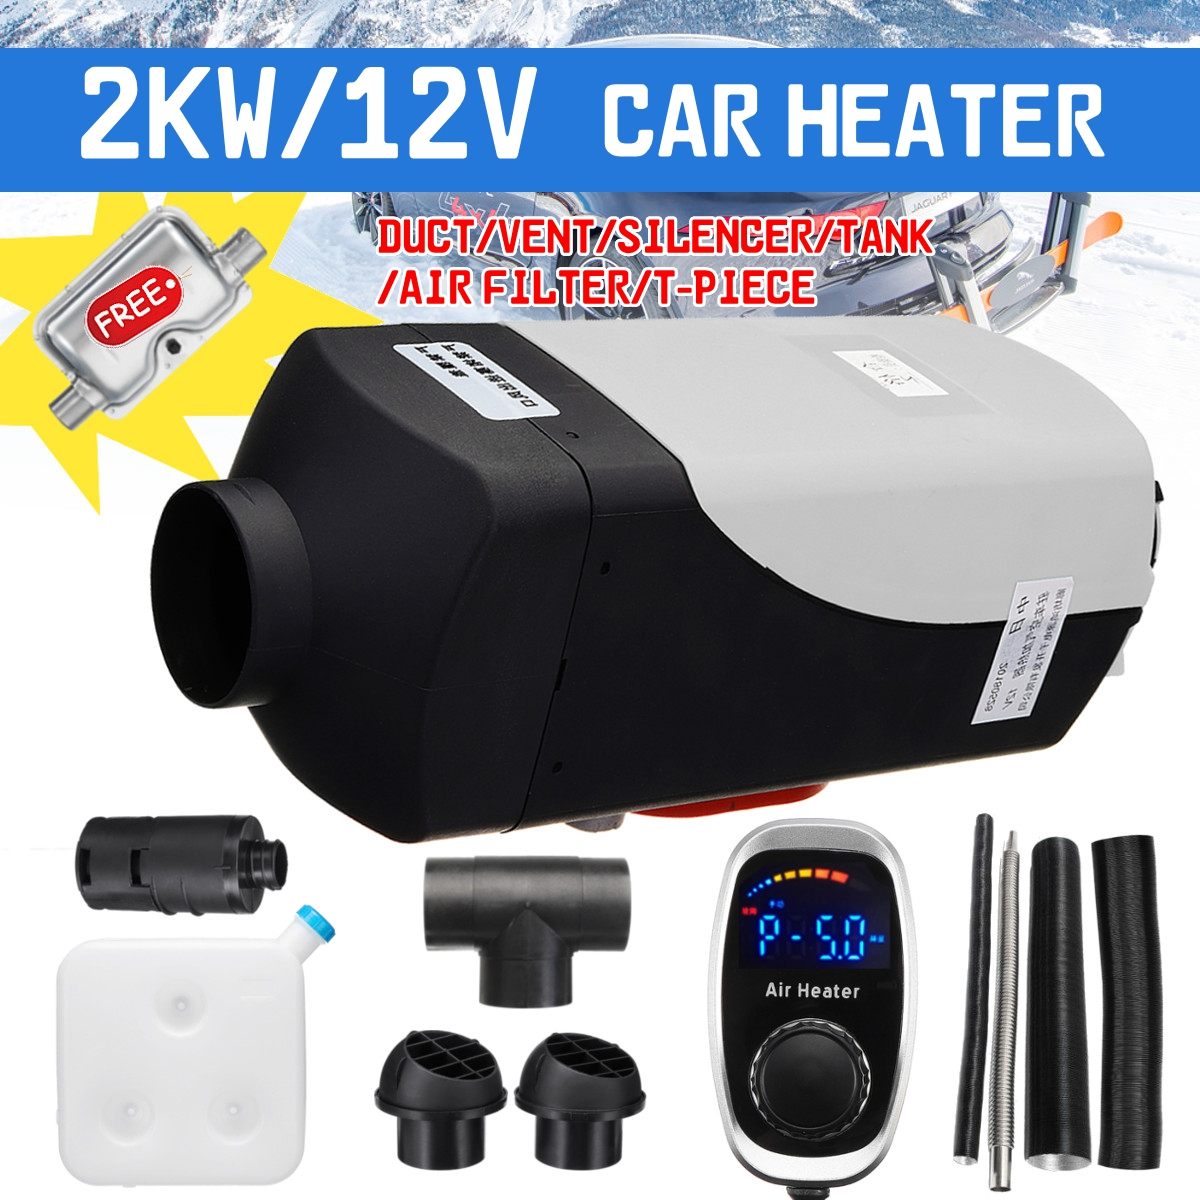 New 12V 2000W Air diesels Fuel Heater Single Hole 2KW For Boats Bus Car Heater Remote Control Digital knob Switch With Silencer 1pc seeyule car a c heater control panel 09092003n air conditioner temperature switch knob 71207001861 for peugeot 405 samand